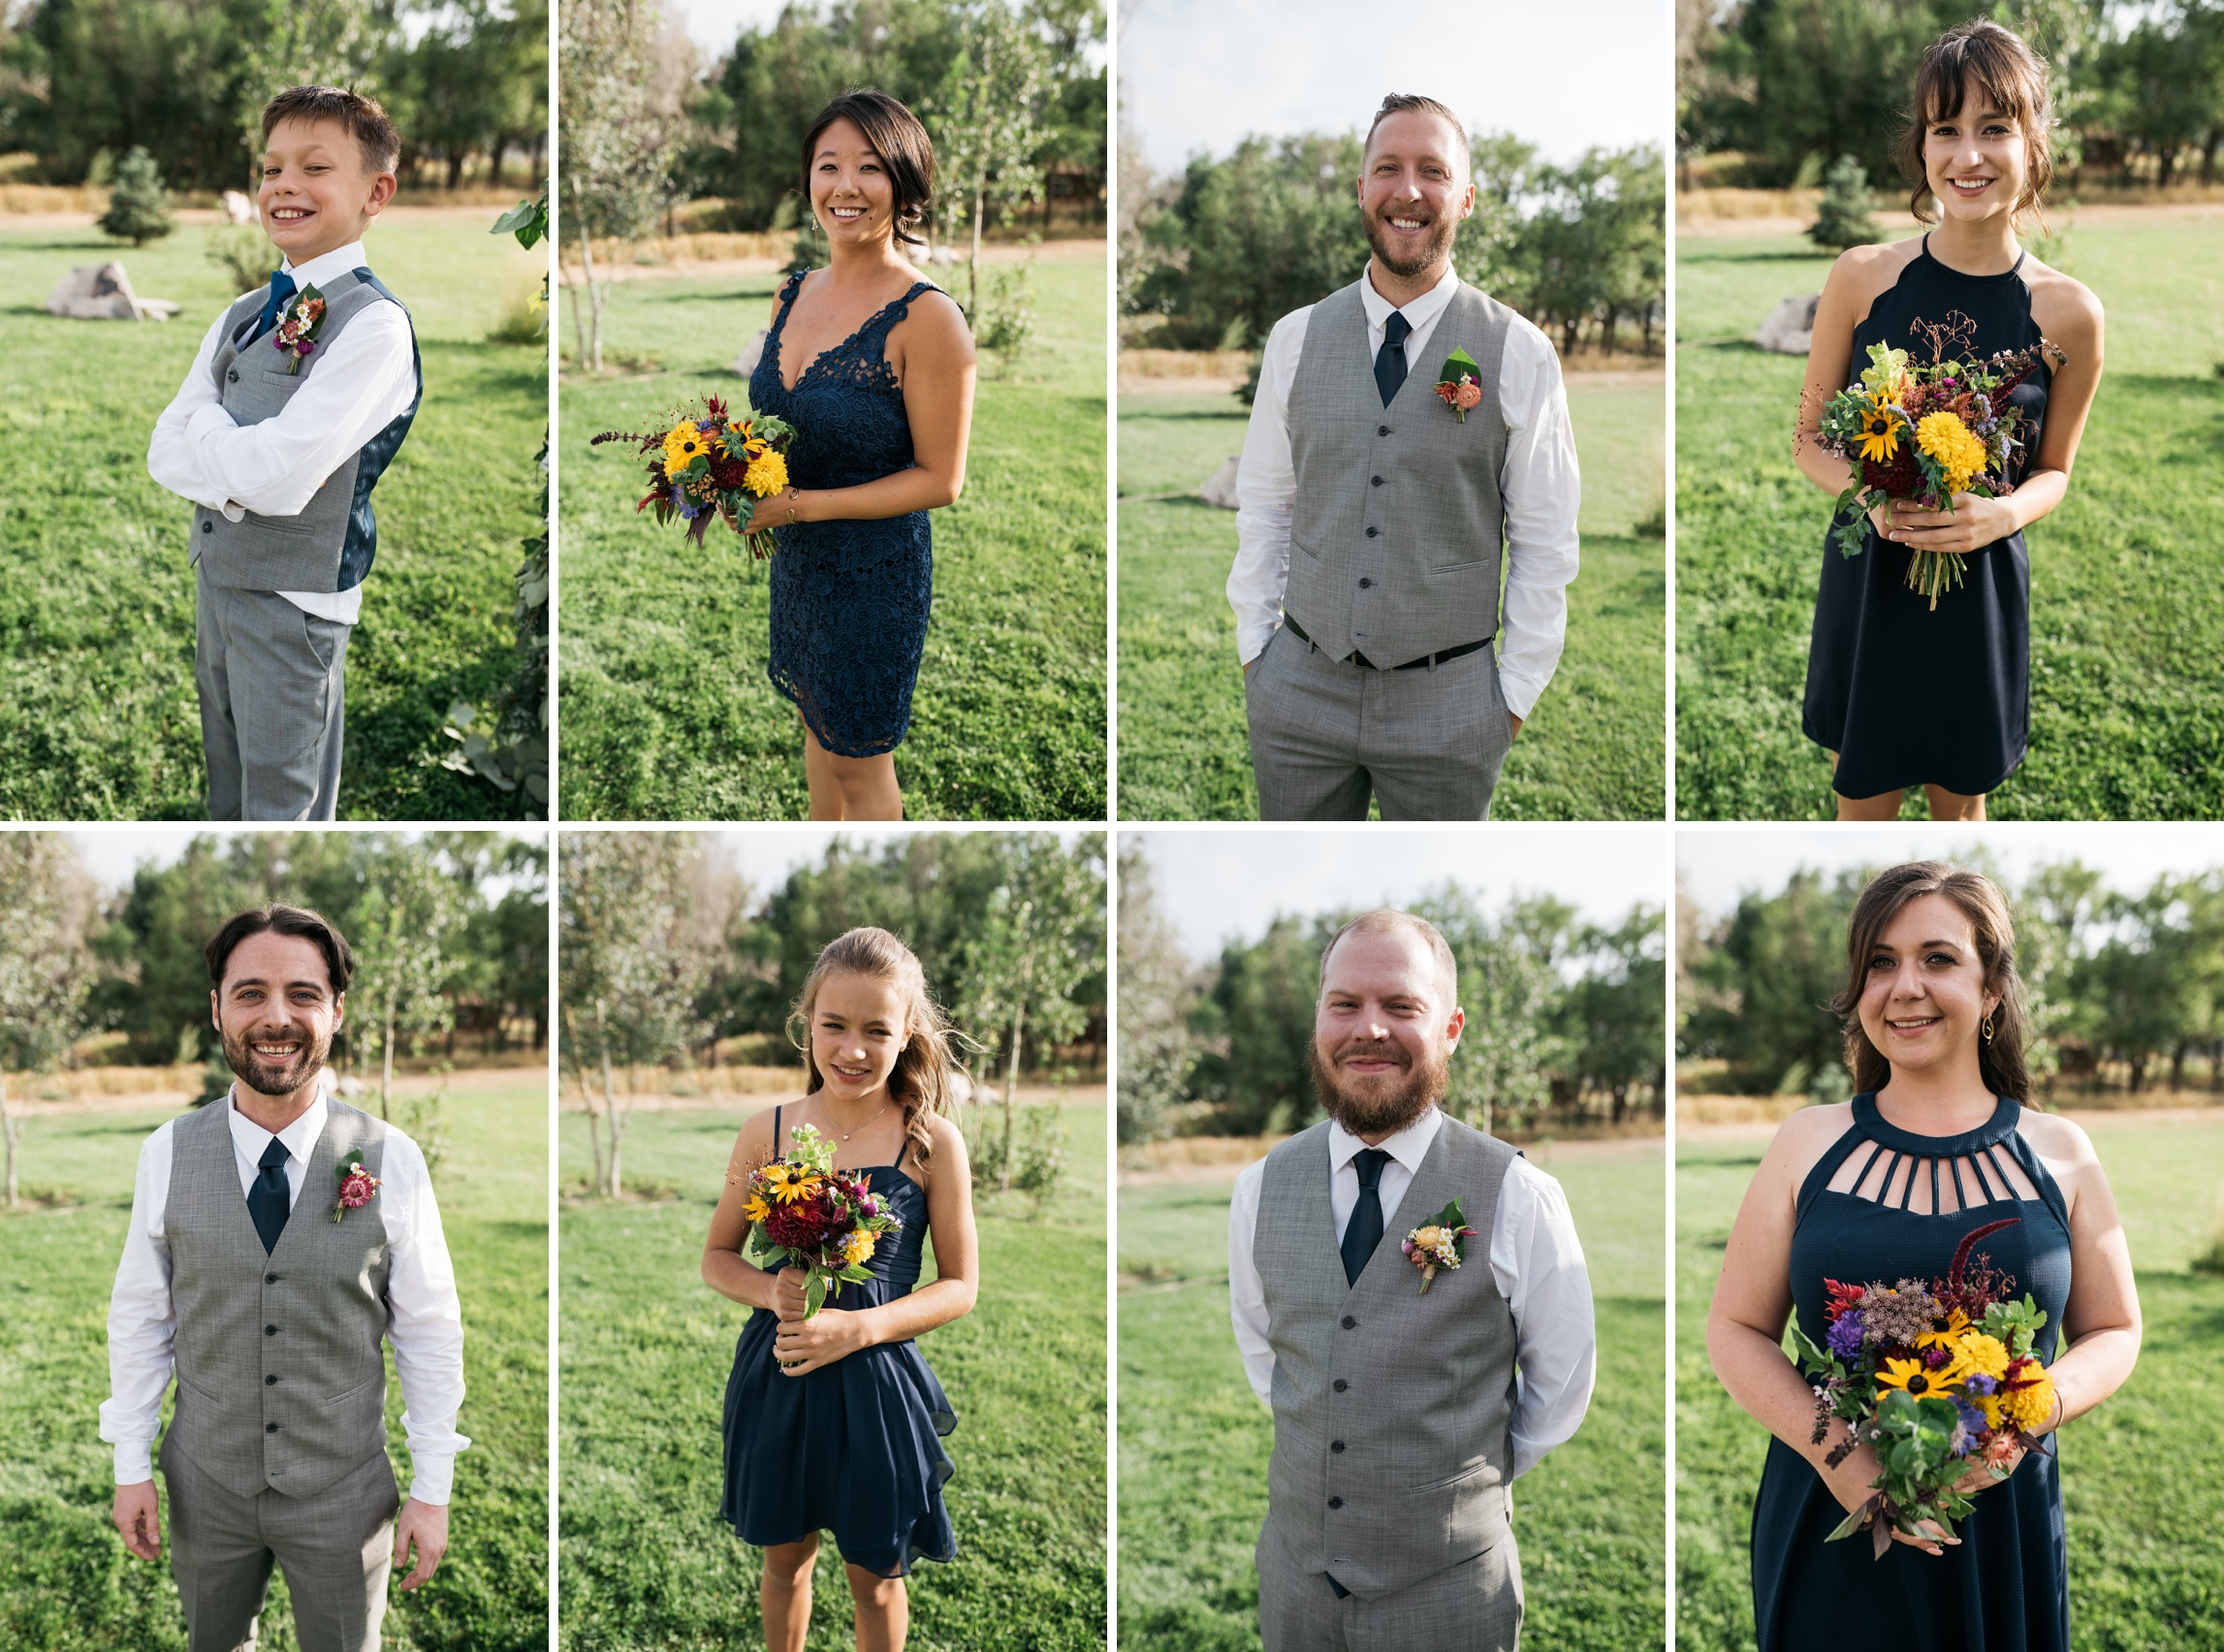 The wedding party at a wedding at Sylvan Dale Guest Ranch outside Loveland, Colorado. Wedding photography by Sonja Salzburg of Sonja K Photography.